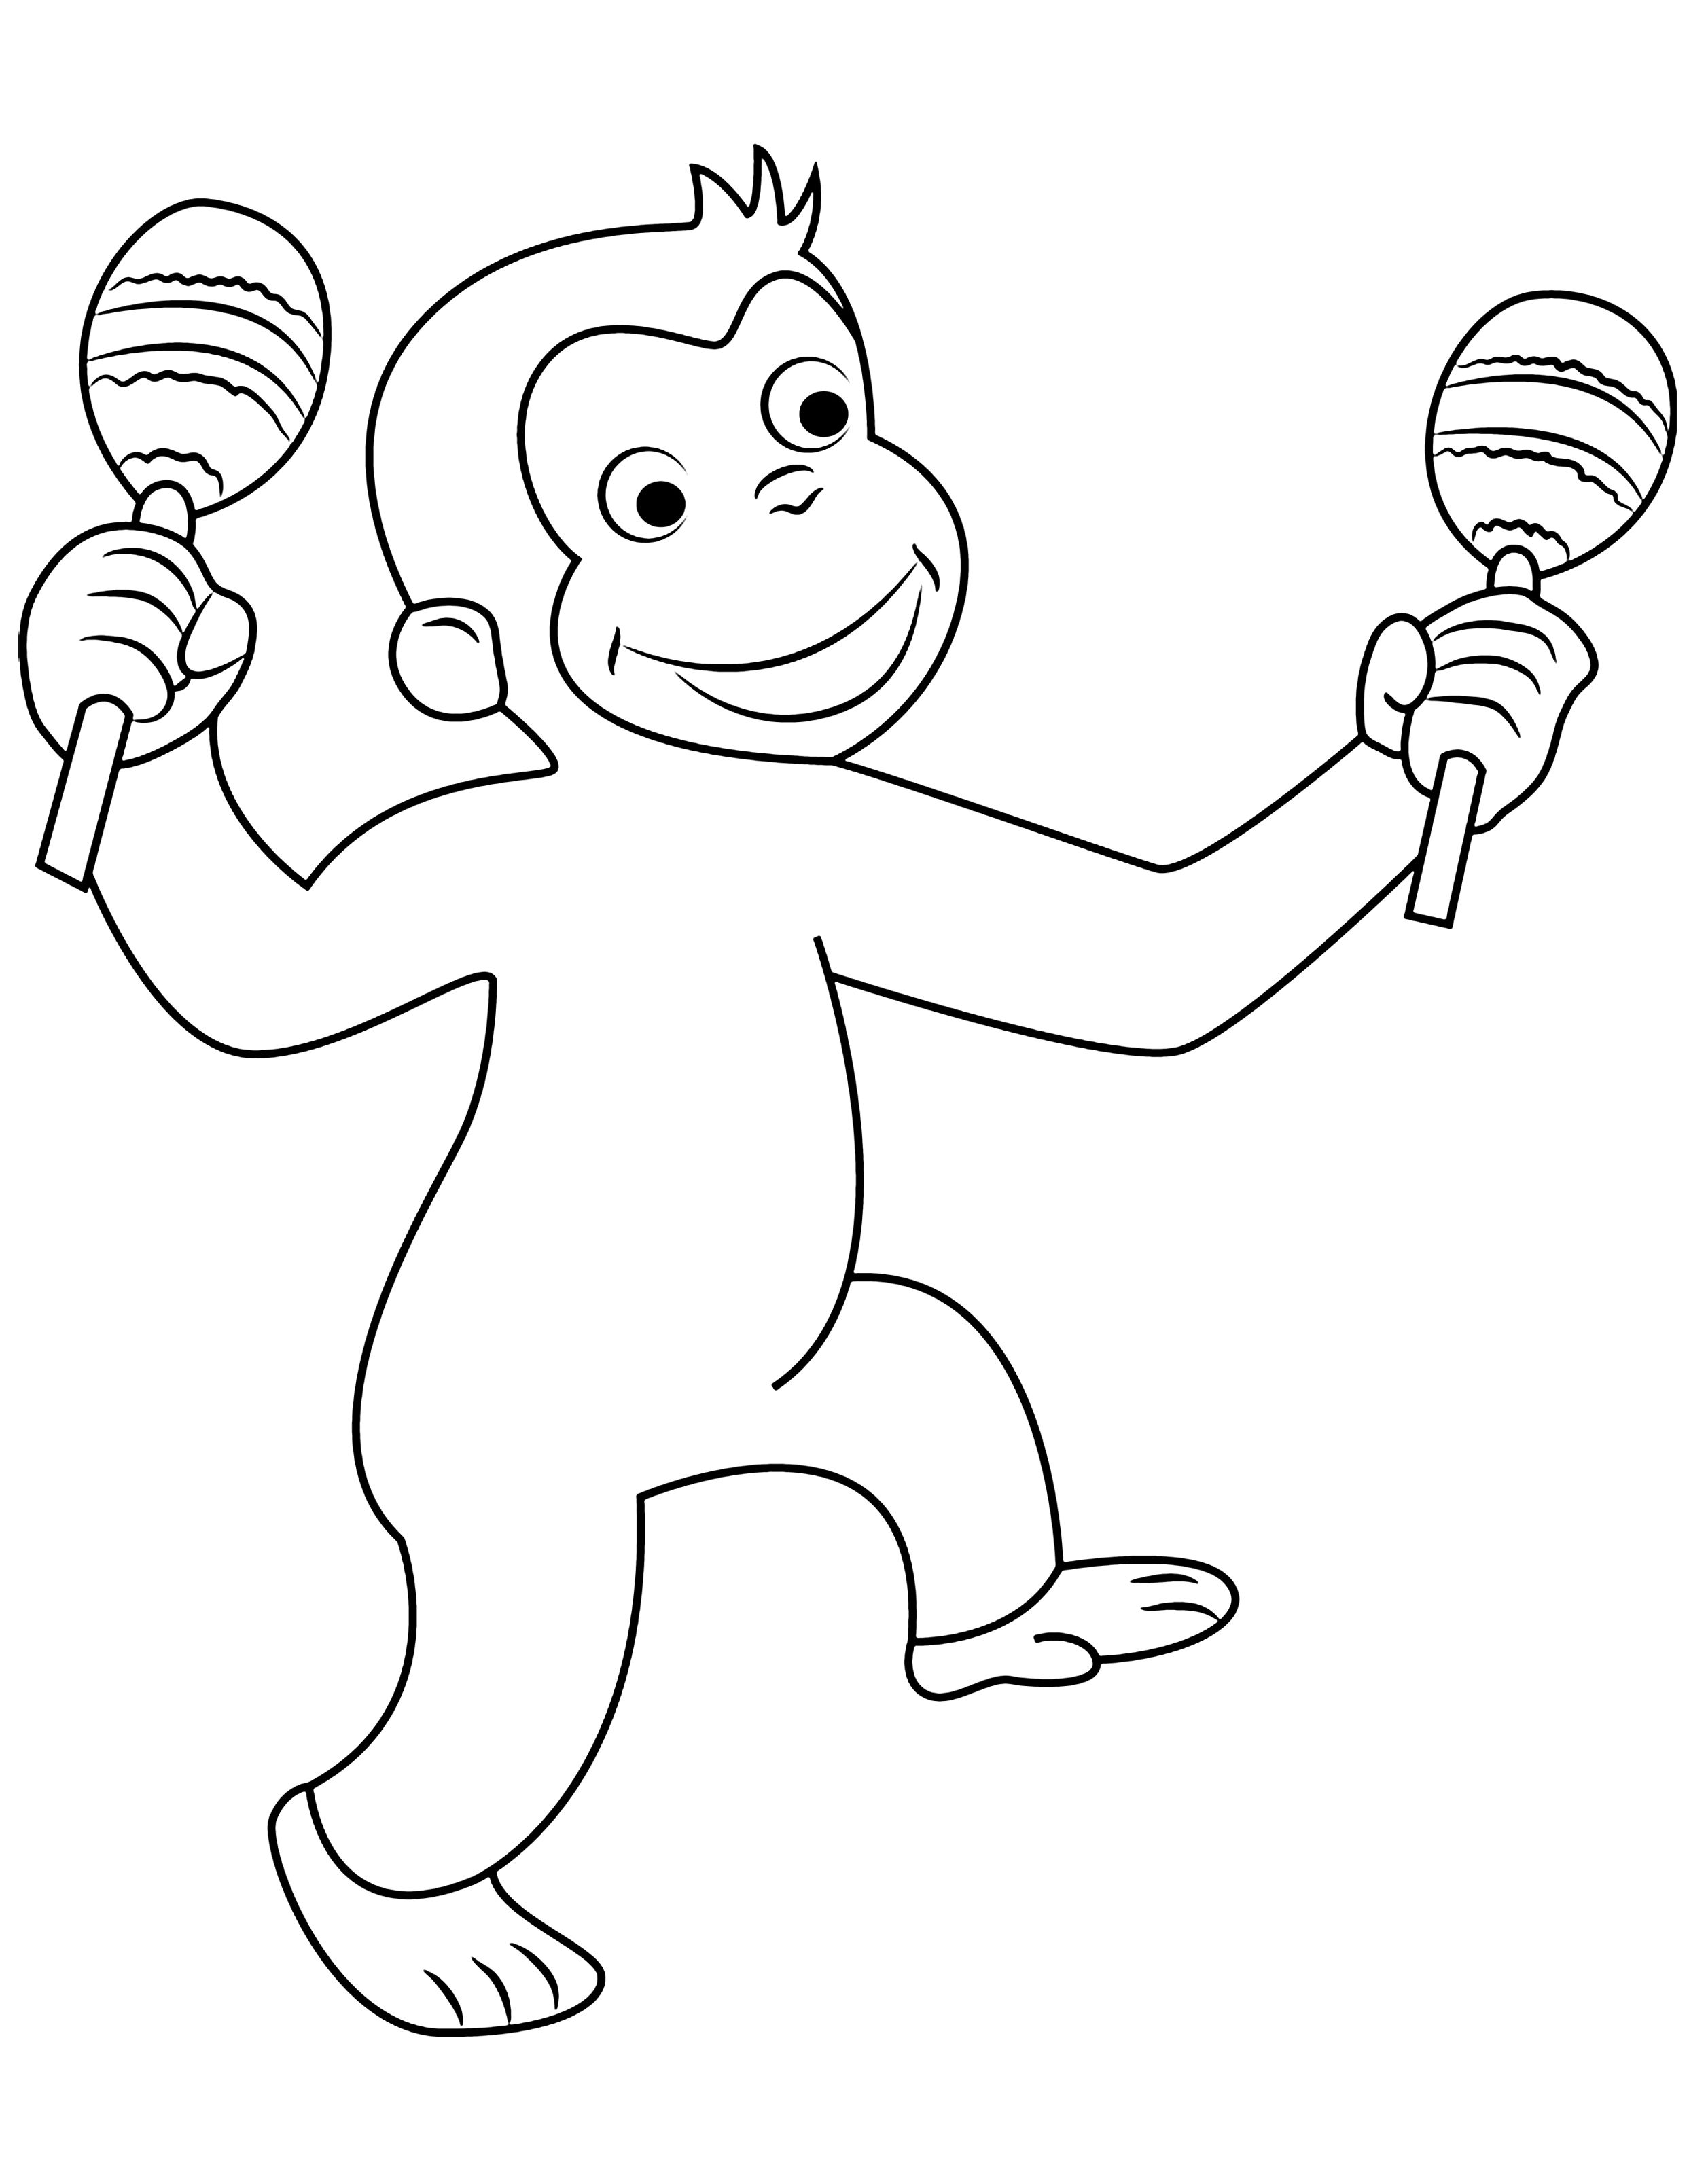 30 Curious George Coloring Pages For Kids Curious George Coloring Pages Cartoon Coloring Pages Coloring Pages For Kids